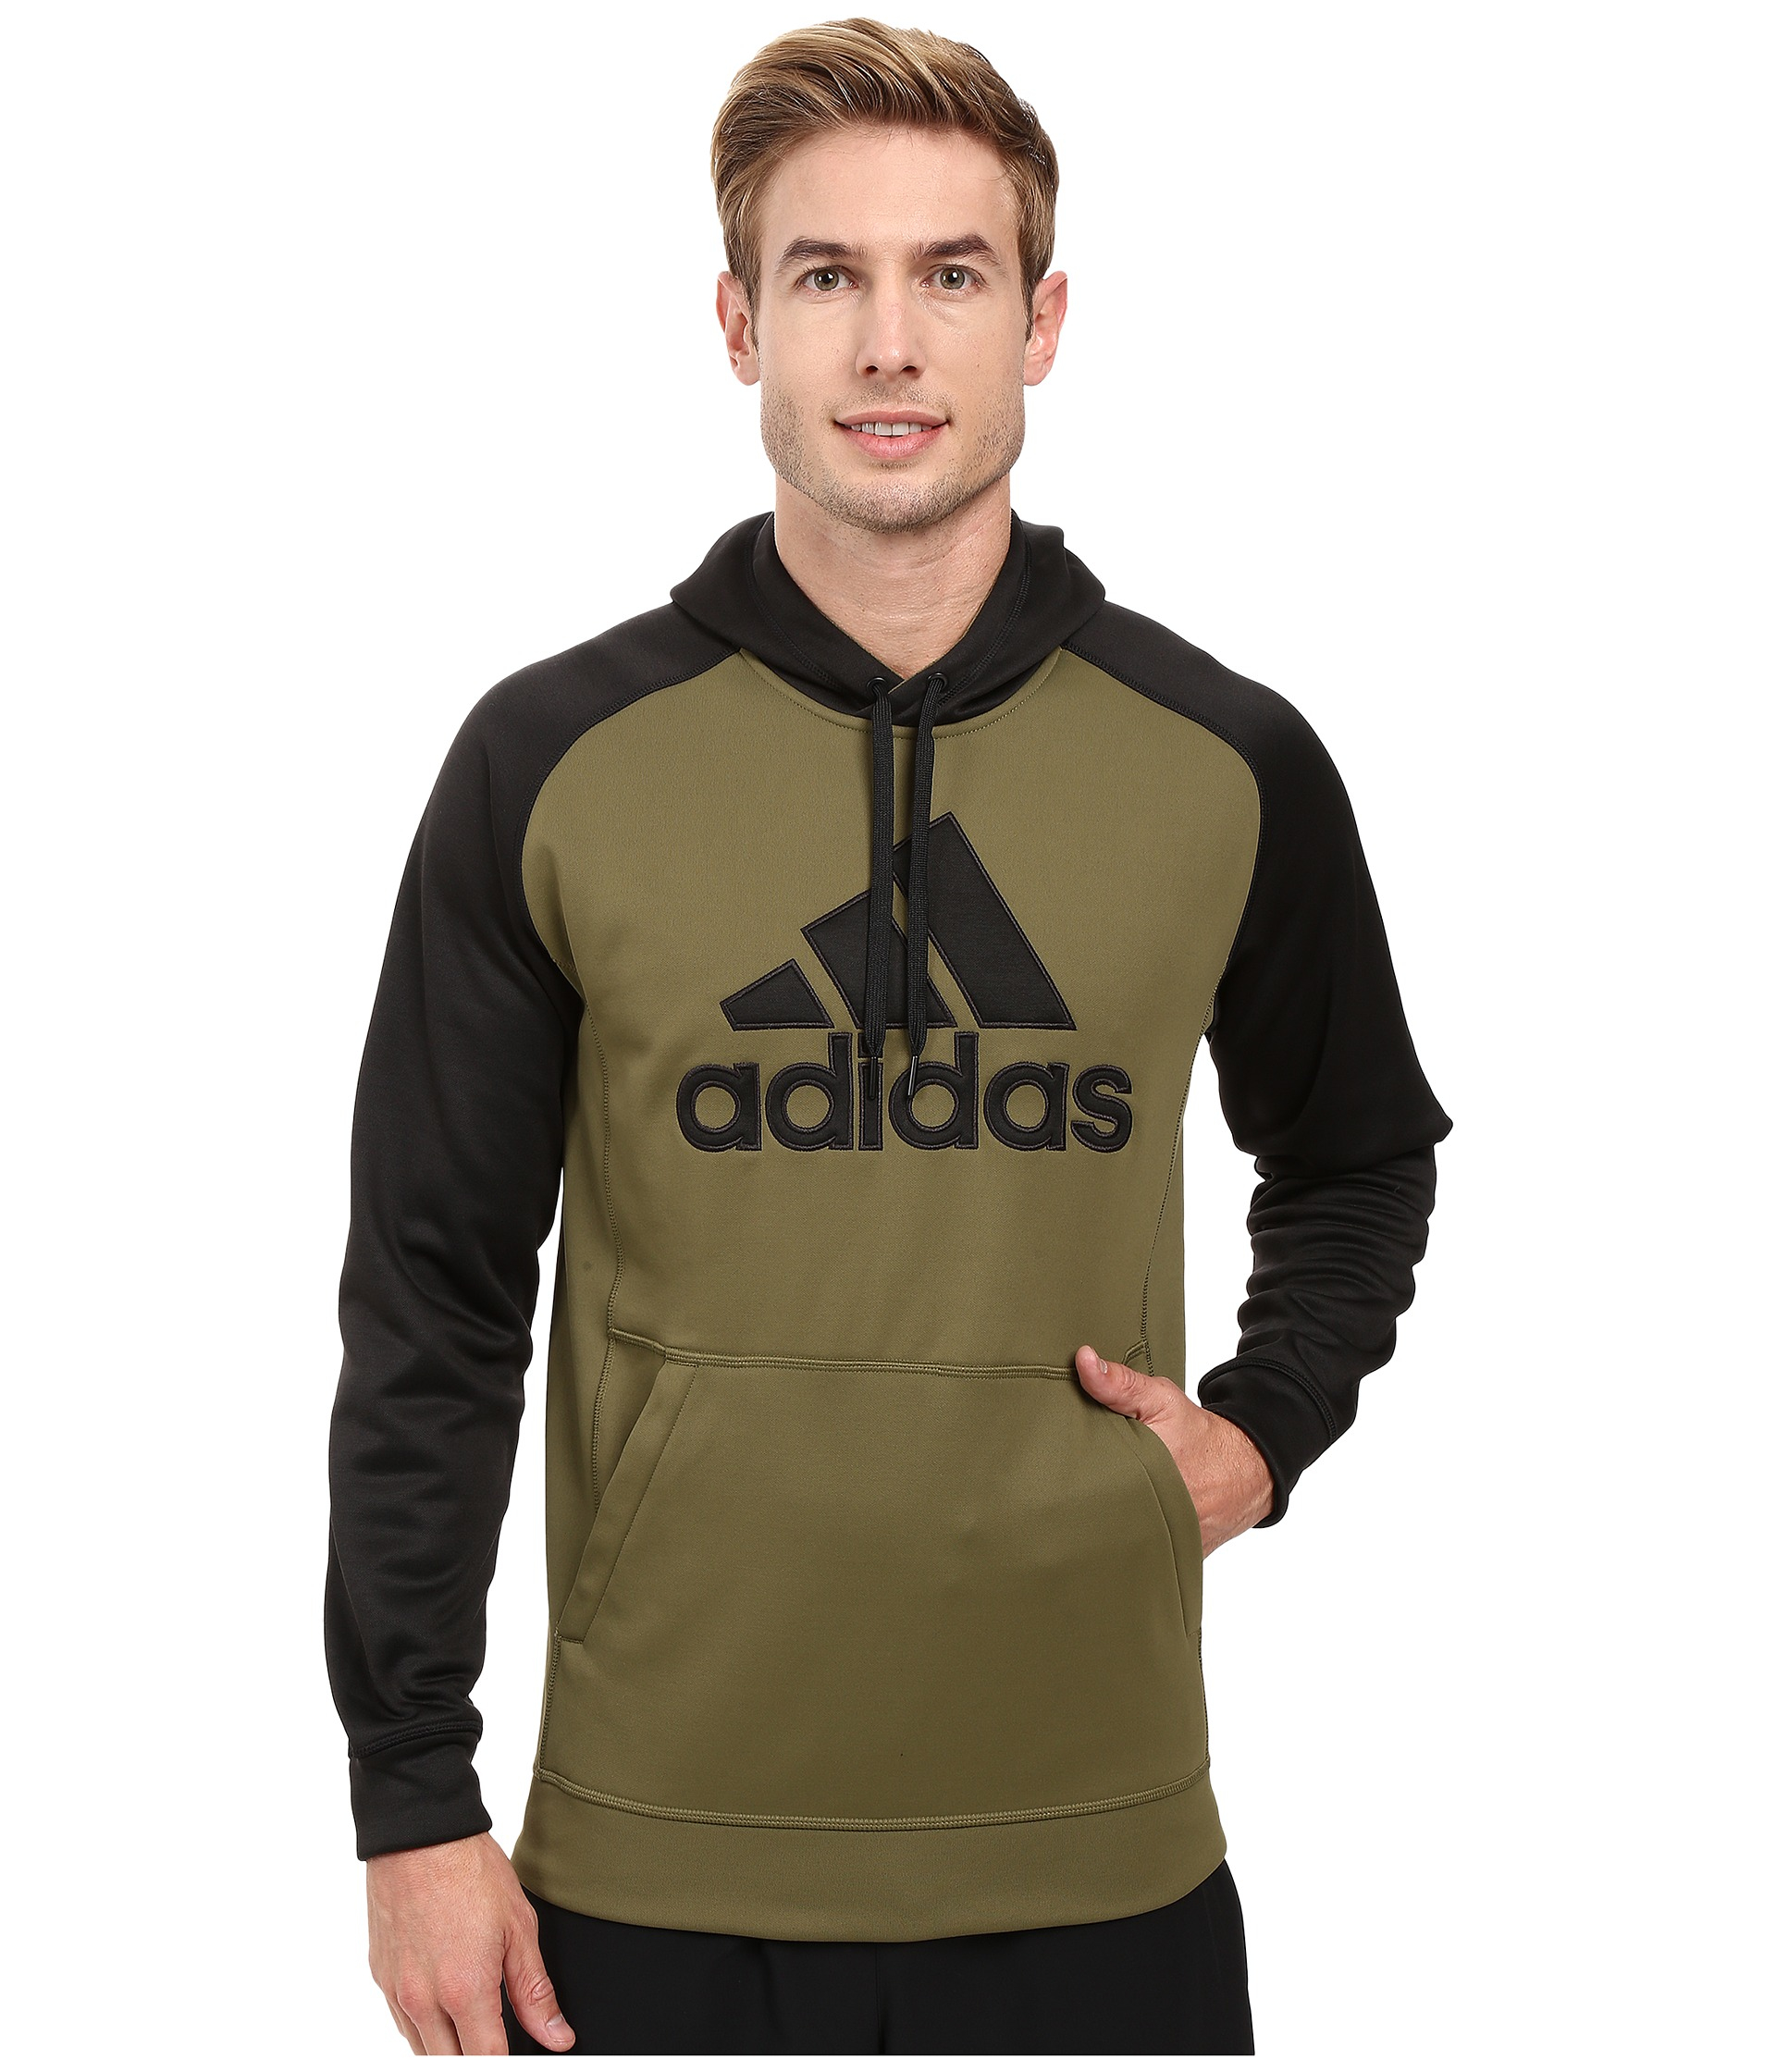 adidas originals team issues fleece pullover hoodie. Black Bedroom Furniture Sets. Home Design Ideas